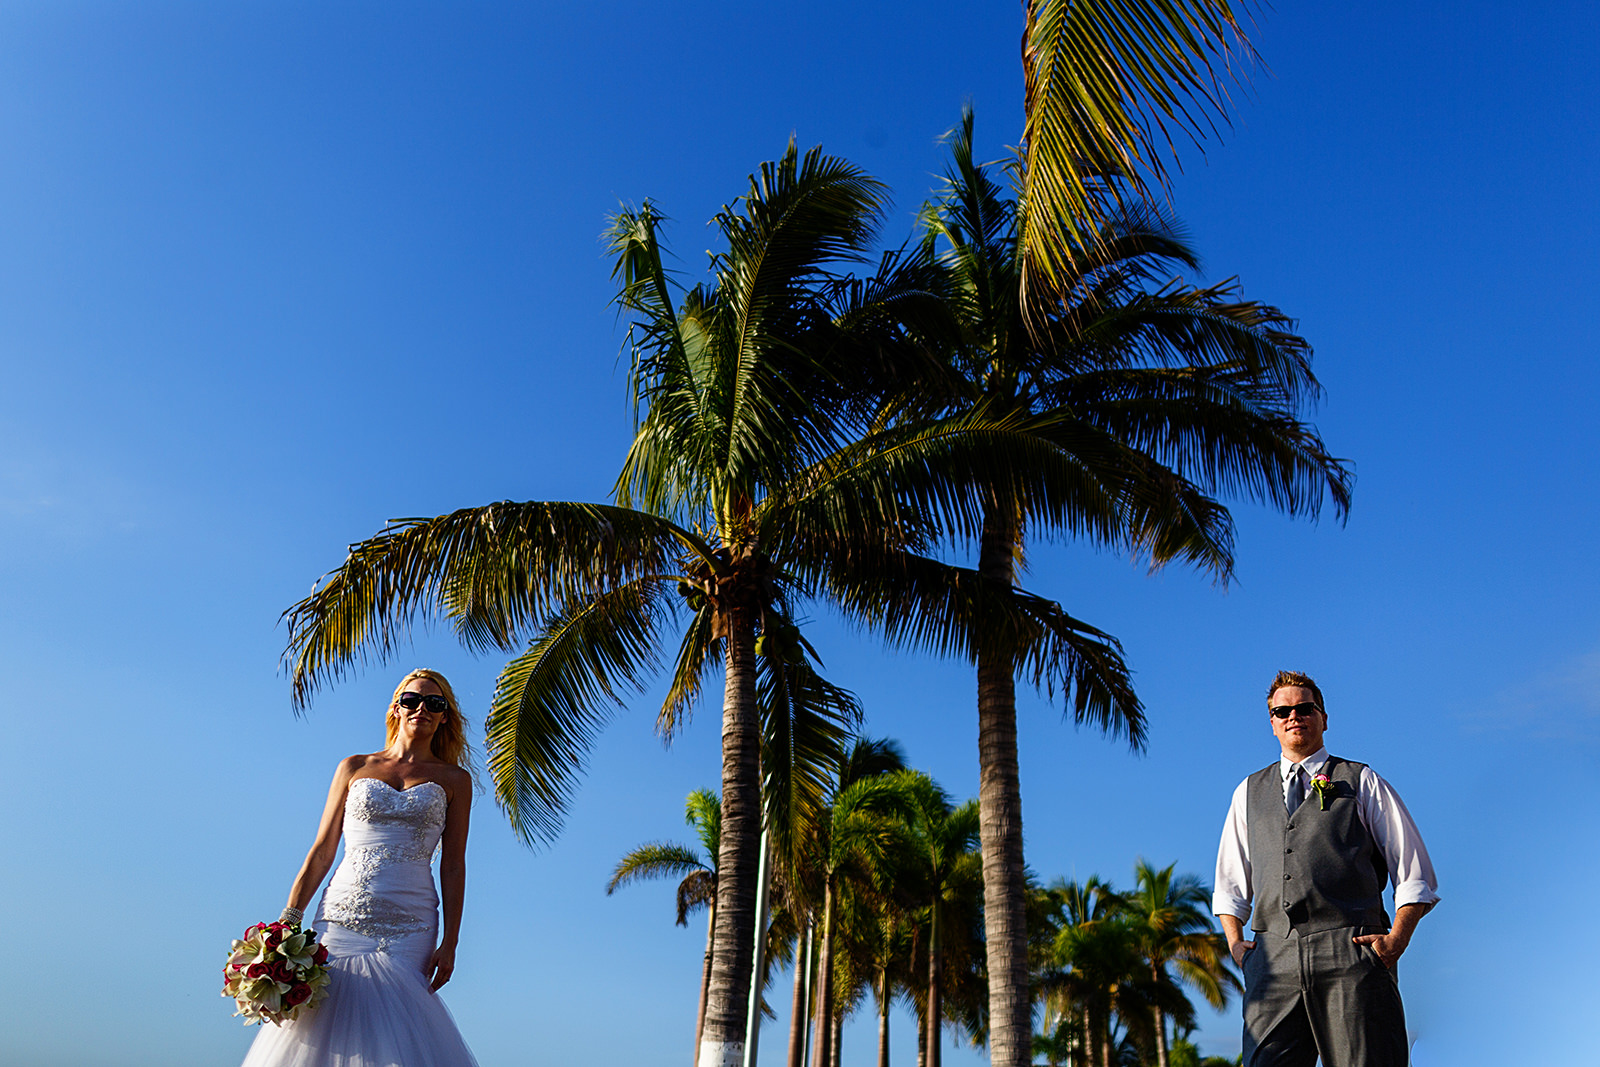 bride and groom portrait with palm trees between them and blue sky as background